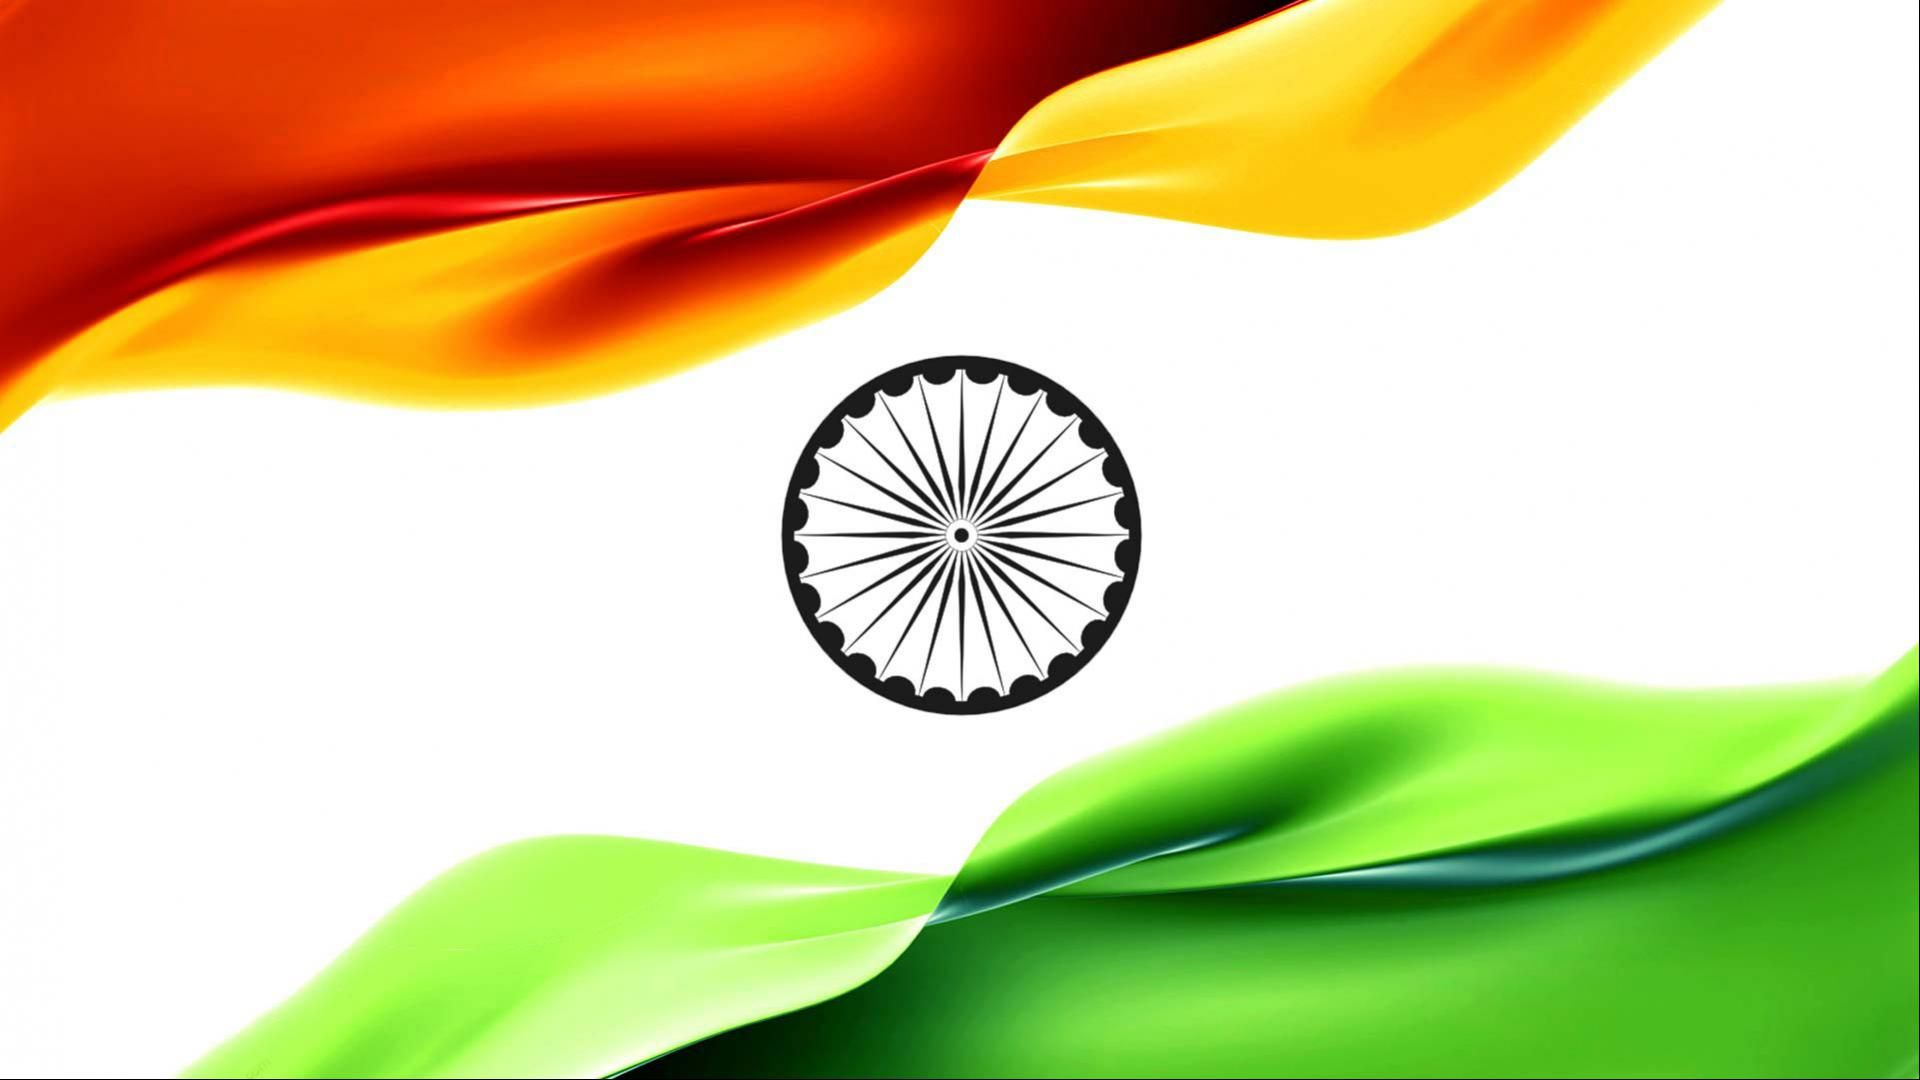 3d Tiranga Flag Image Free Download In Hd For Wallpaper Hd